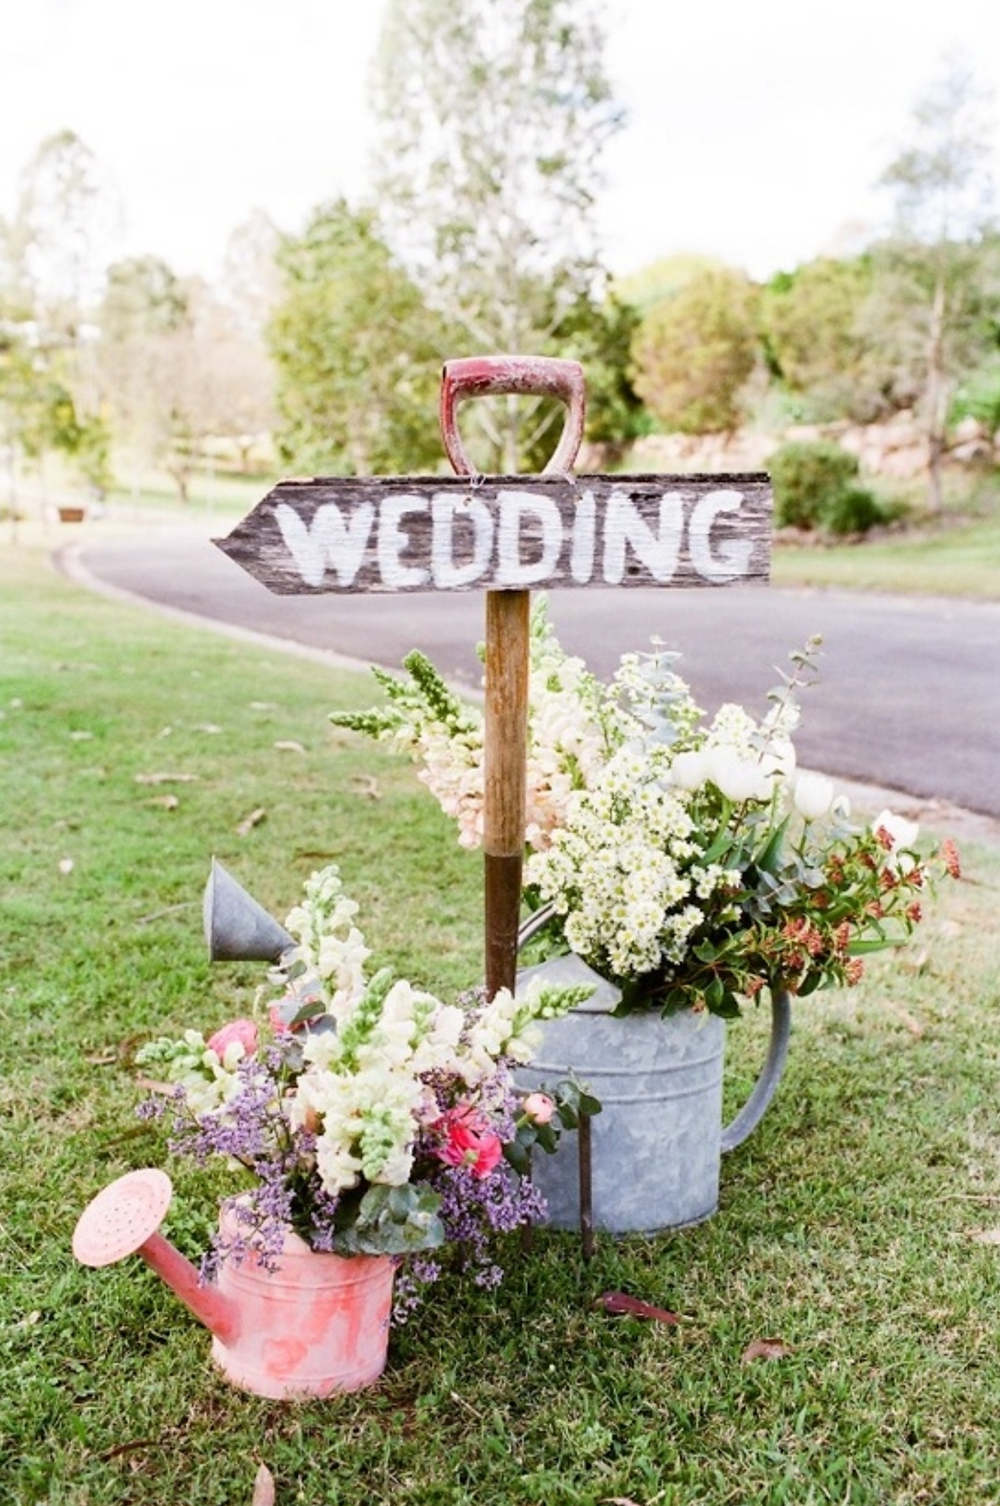 wedding sign with flowers and watering can, show guests to the wedding venue